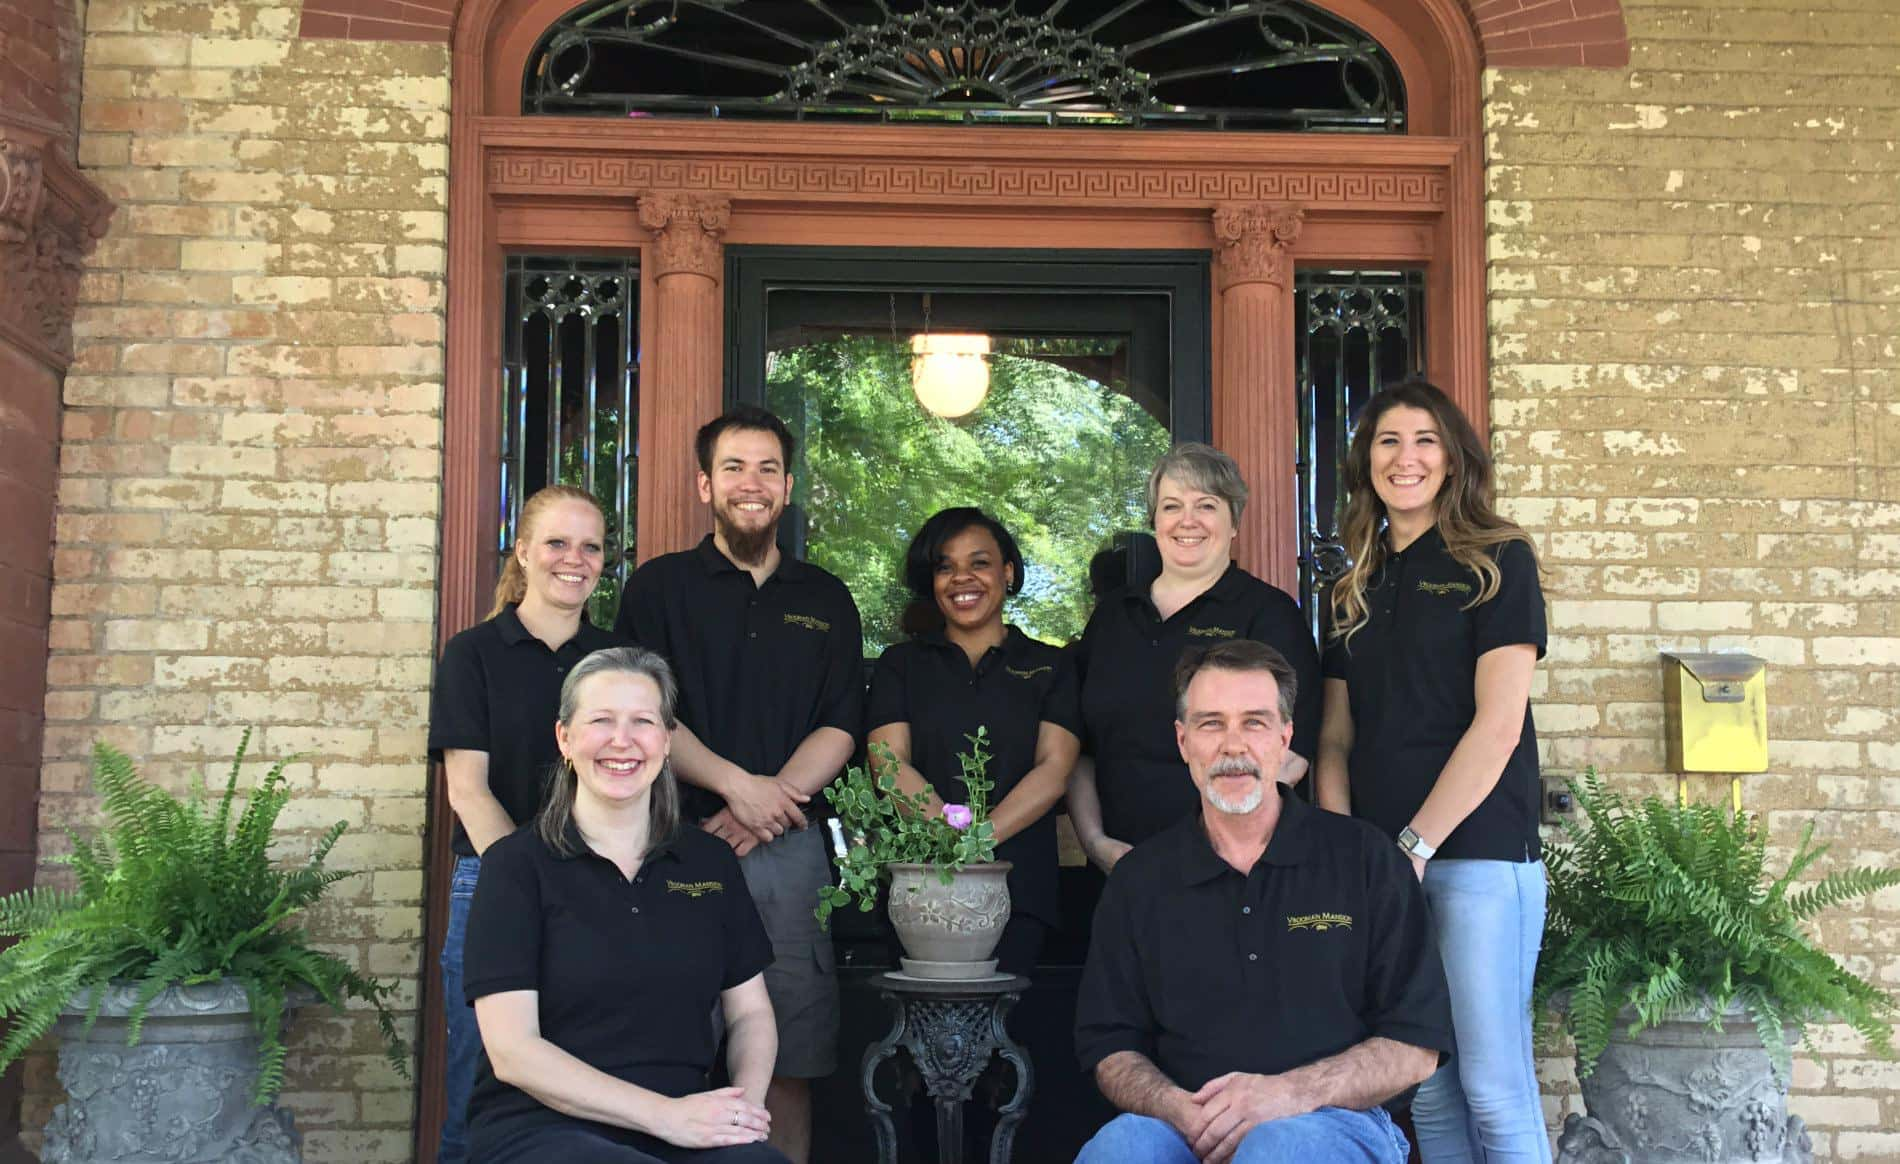 Two men and five women wearing black polo shirts in front of an elaborate leaded glass front door